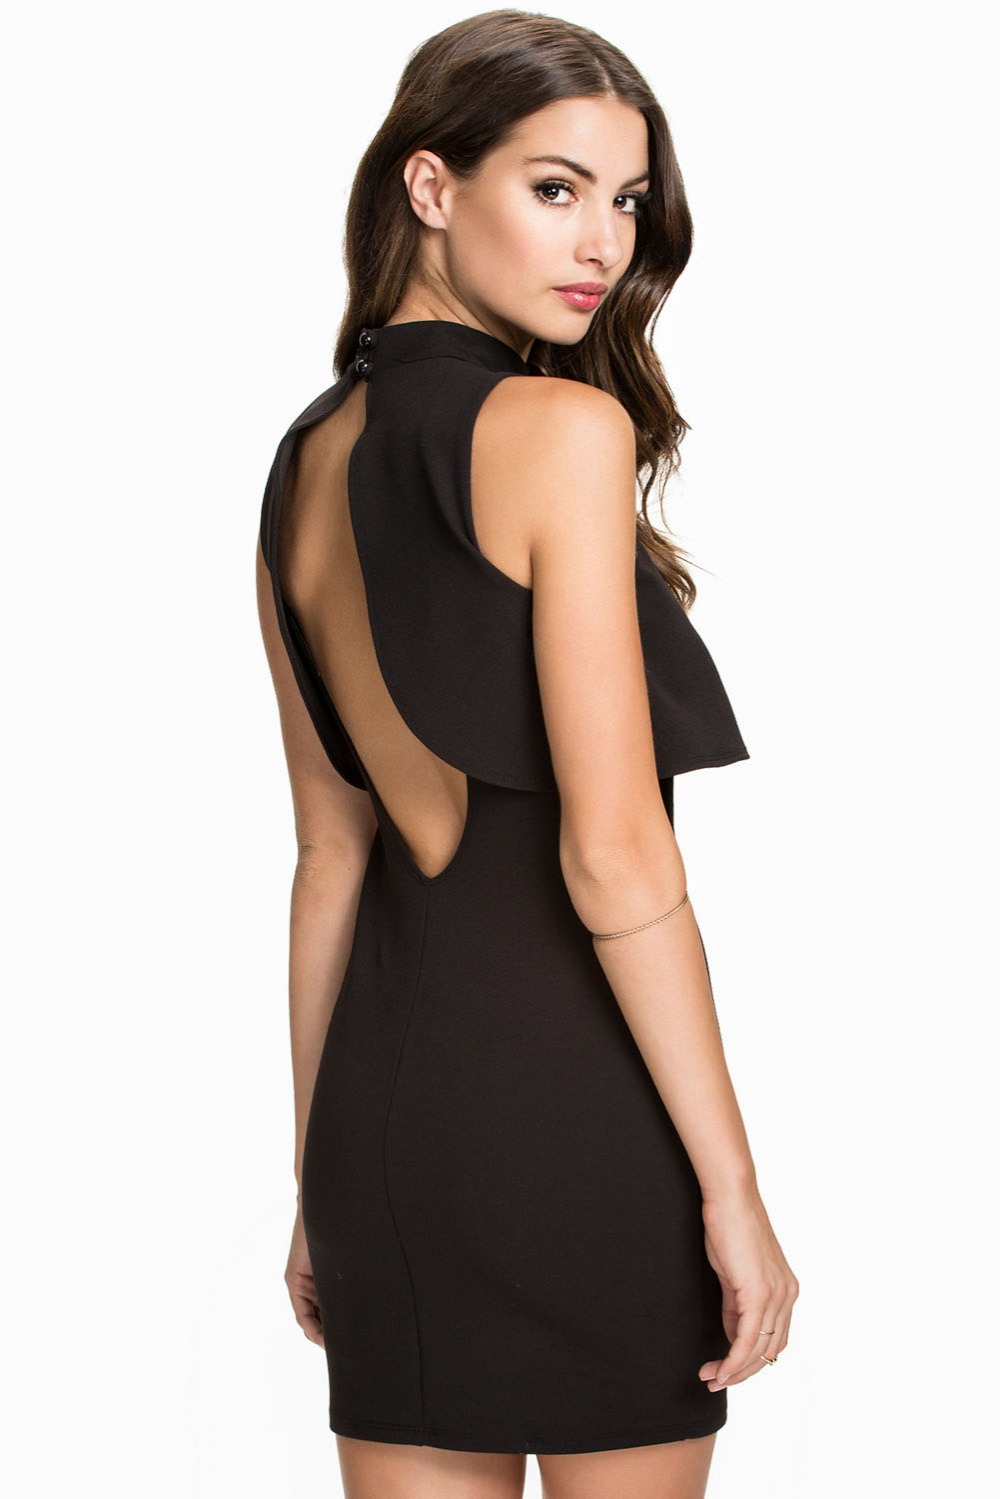 Where to buy a little black dress